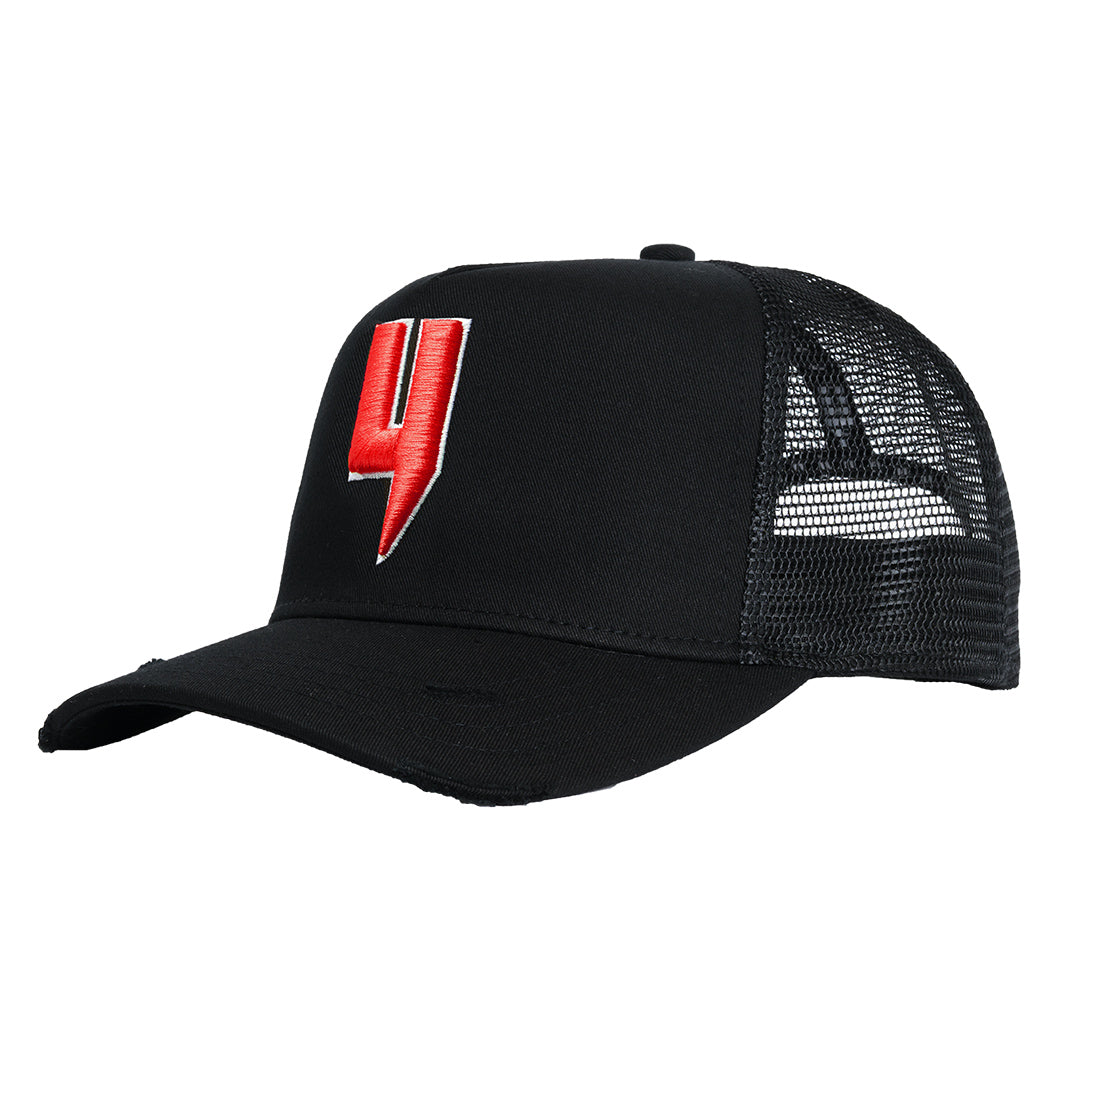 YELIR WORLD Y LOGO CAP BLACK RED Y